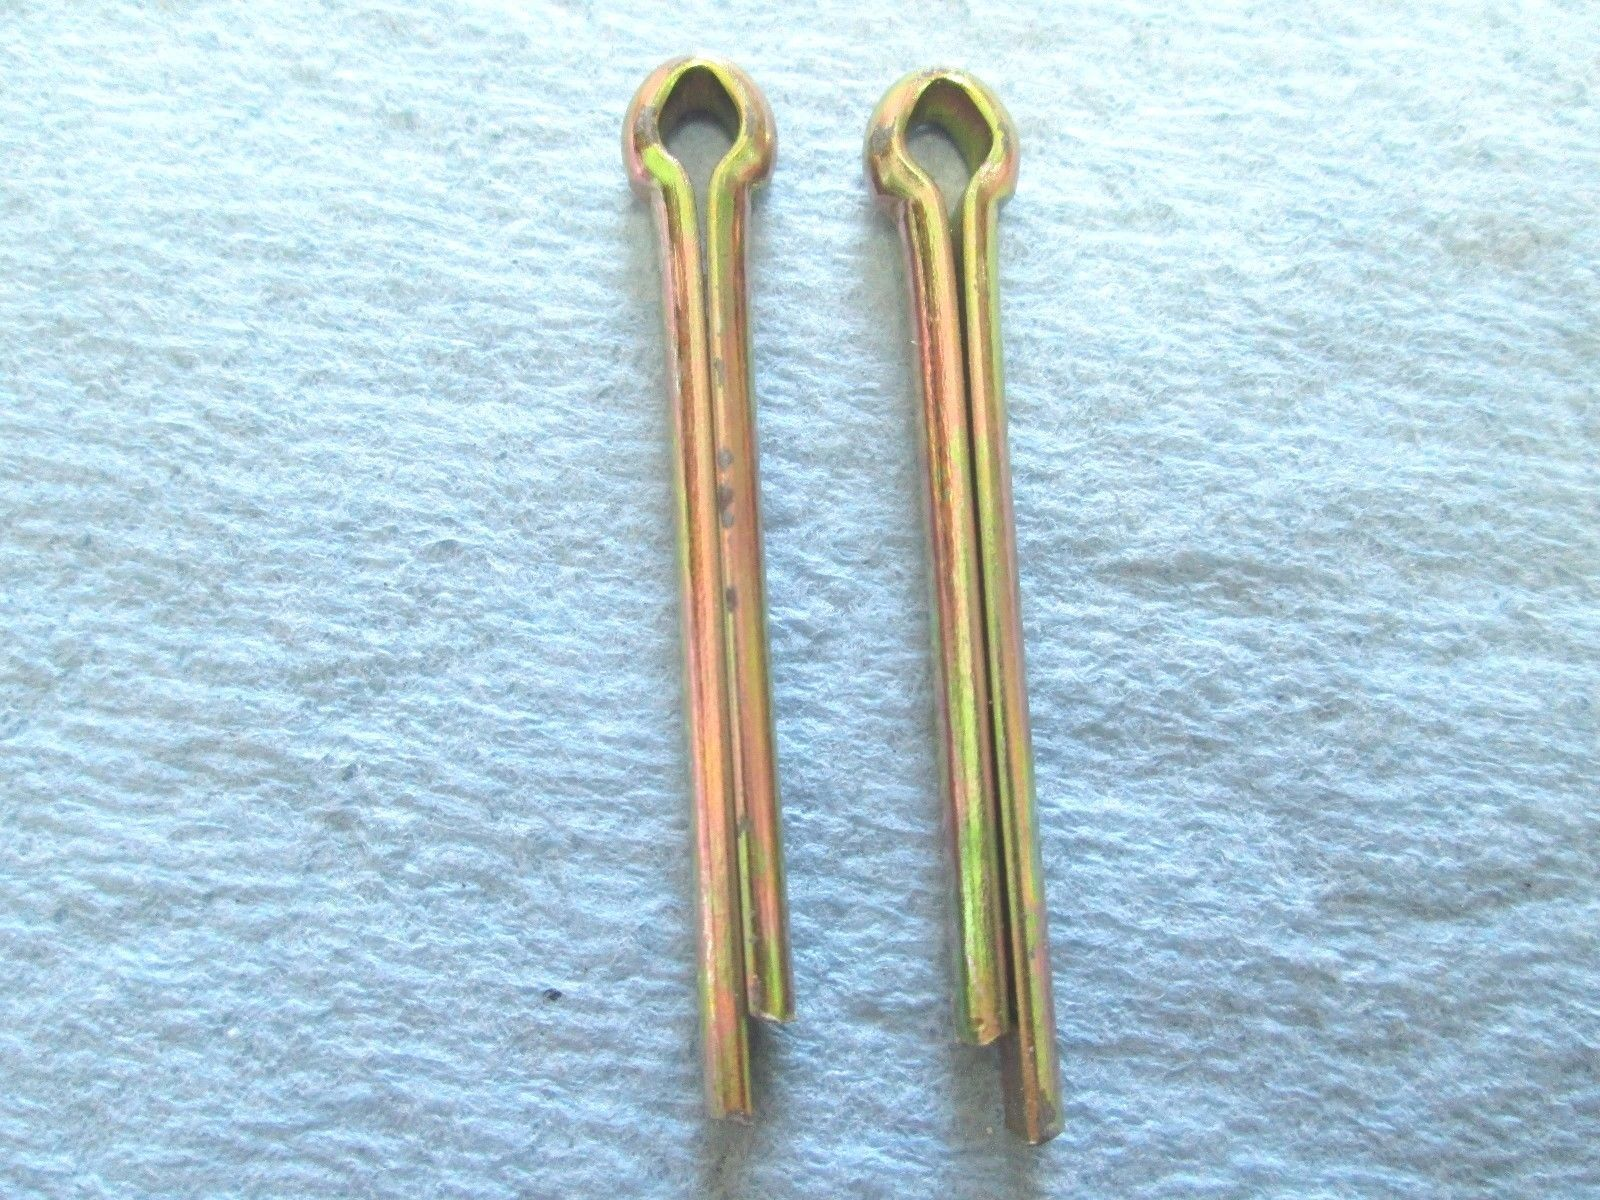 Primary image for 9395 021 2360,  Stihl, Cotter Pin 5 x 40, Quantity=2